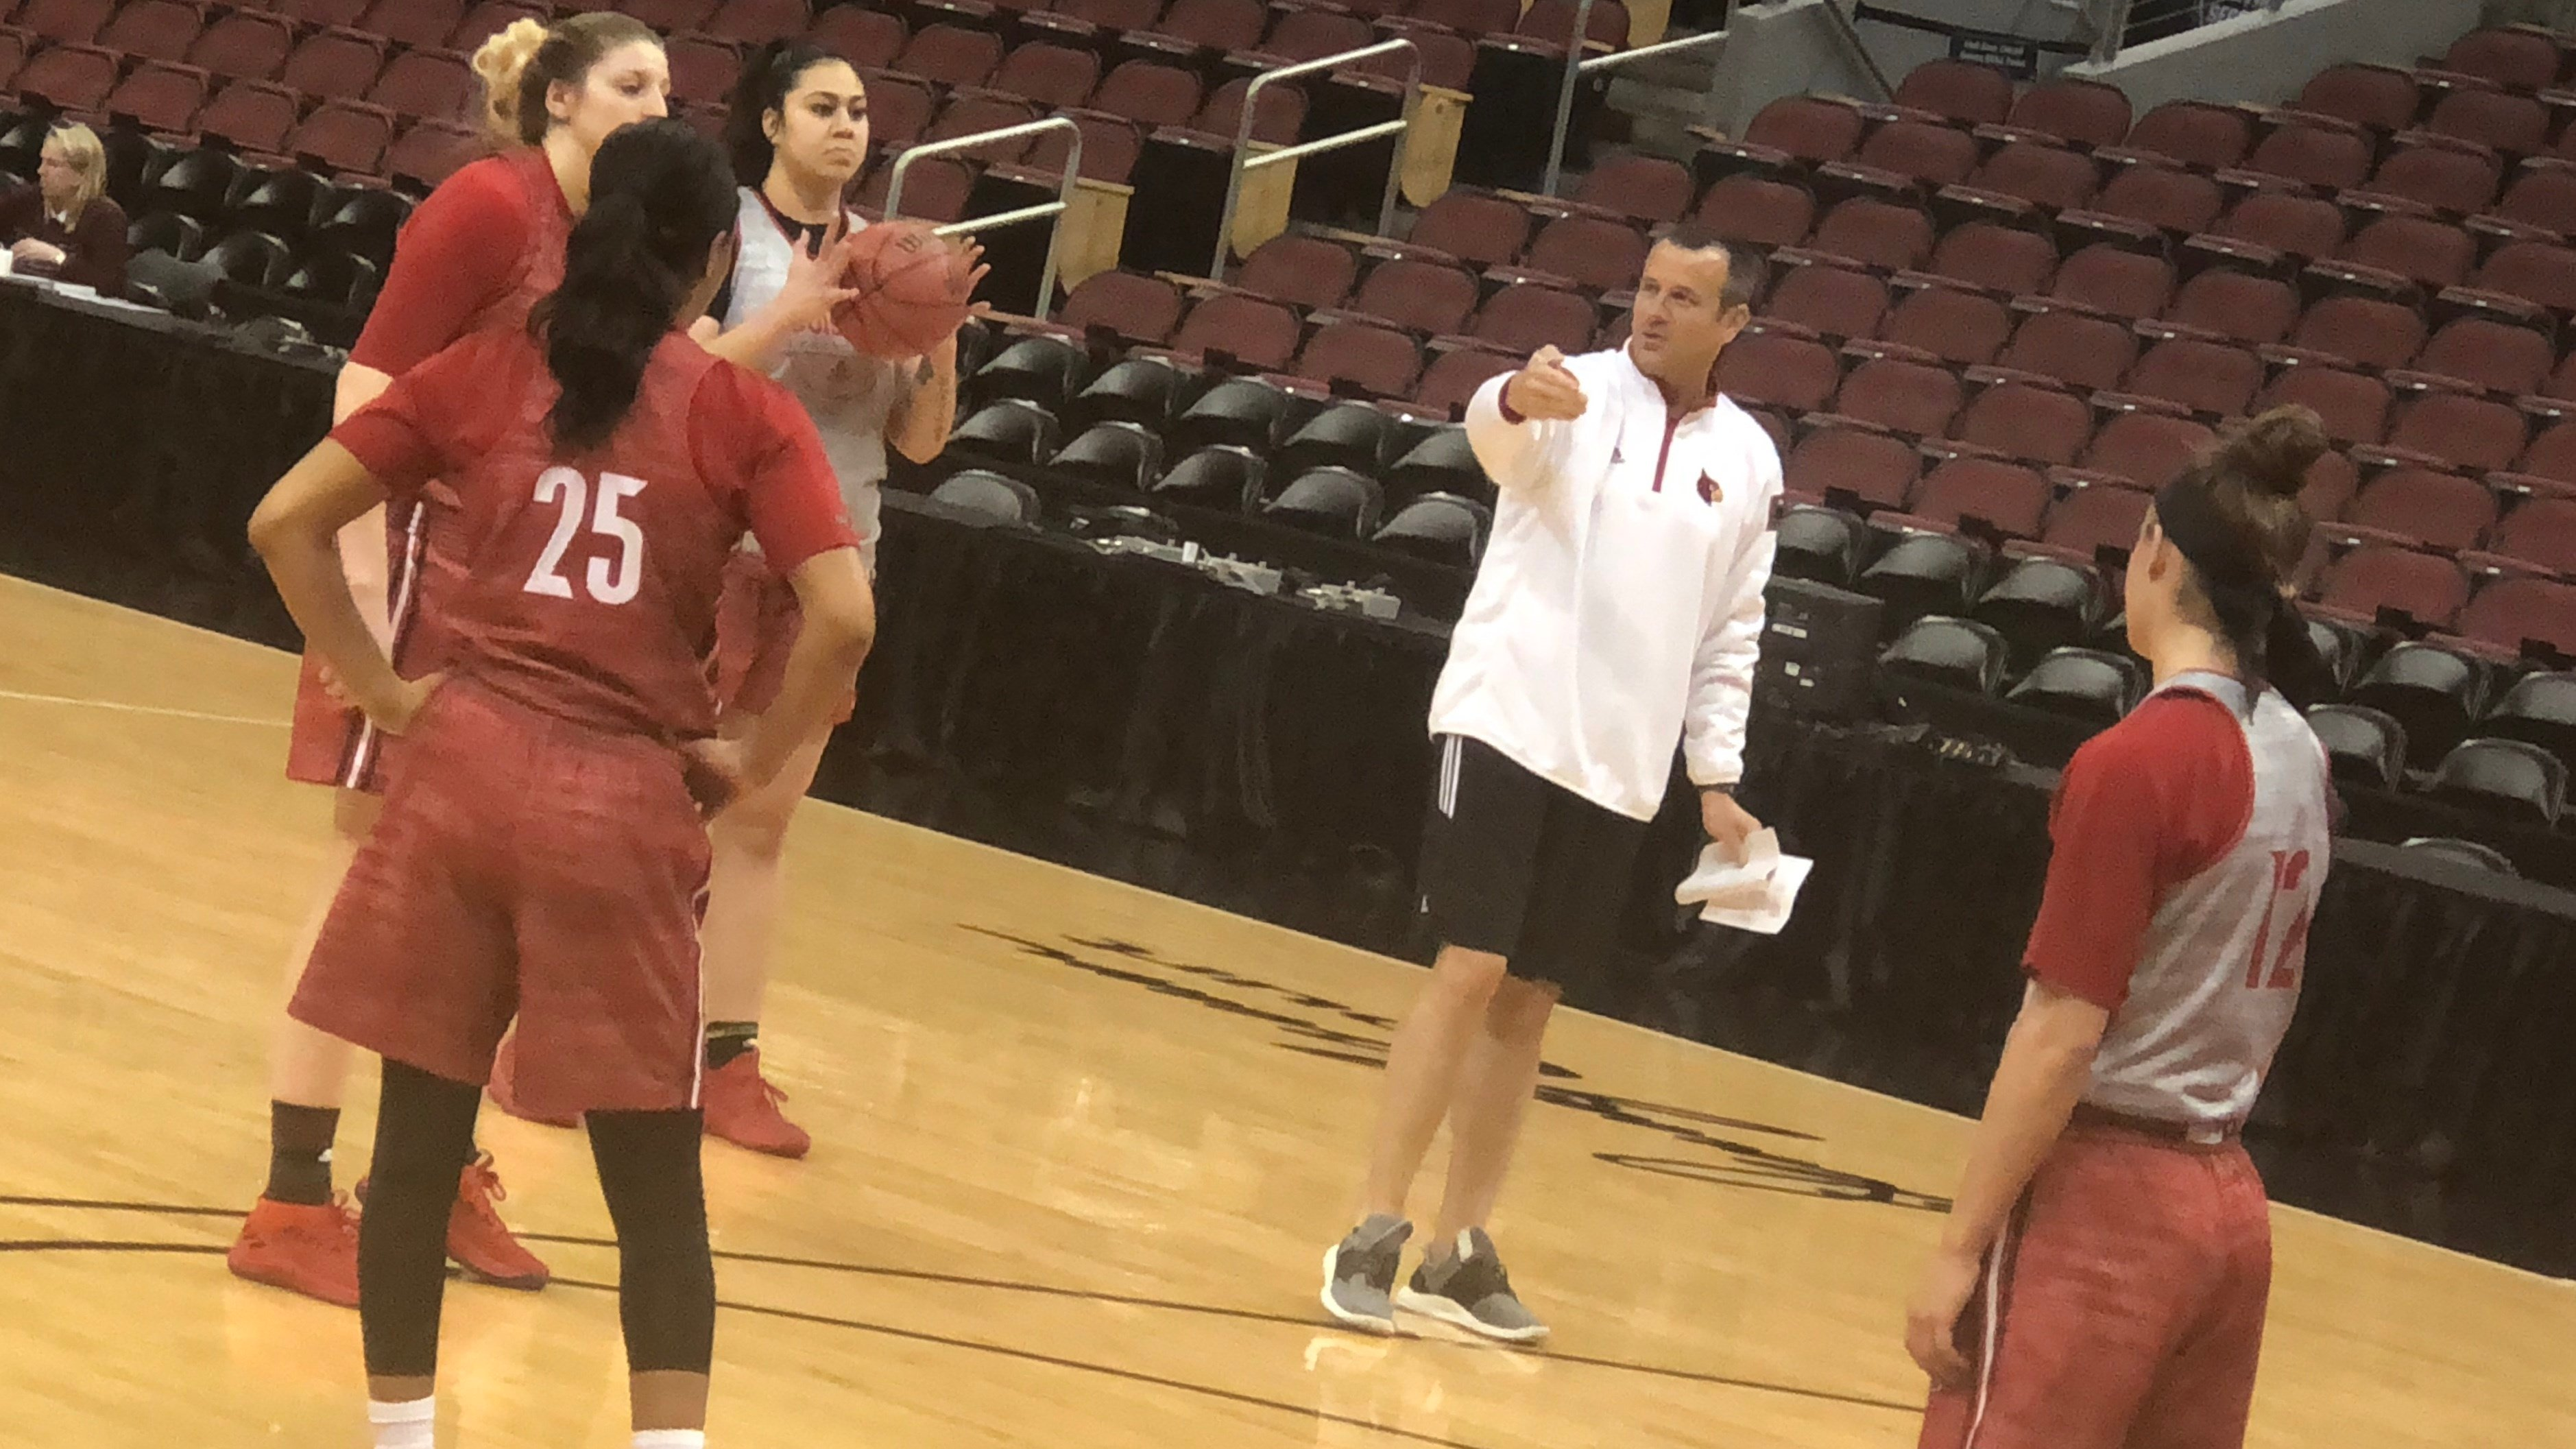 Louisville women's basketball coach Jeff Walz drilled his team for its NCAA Tournament opener against Boise State.